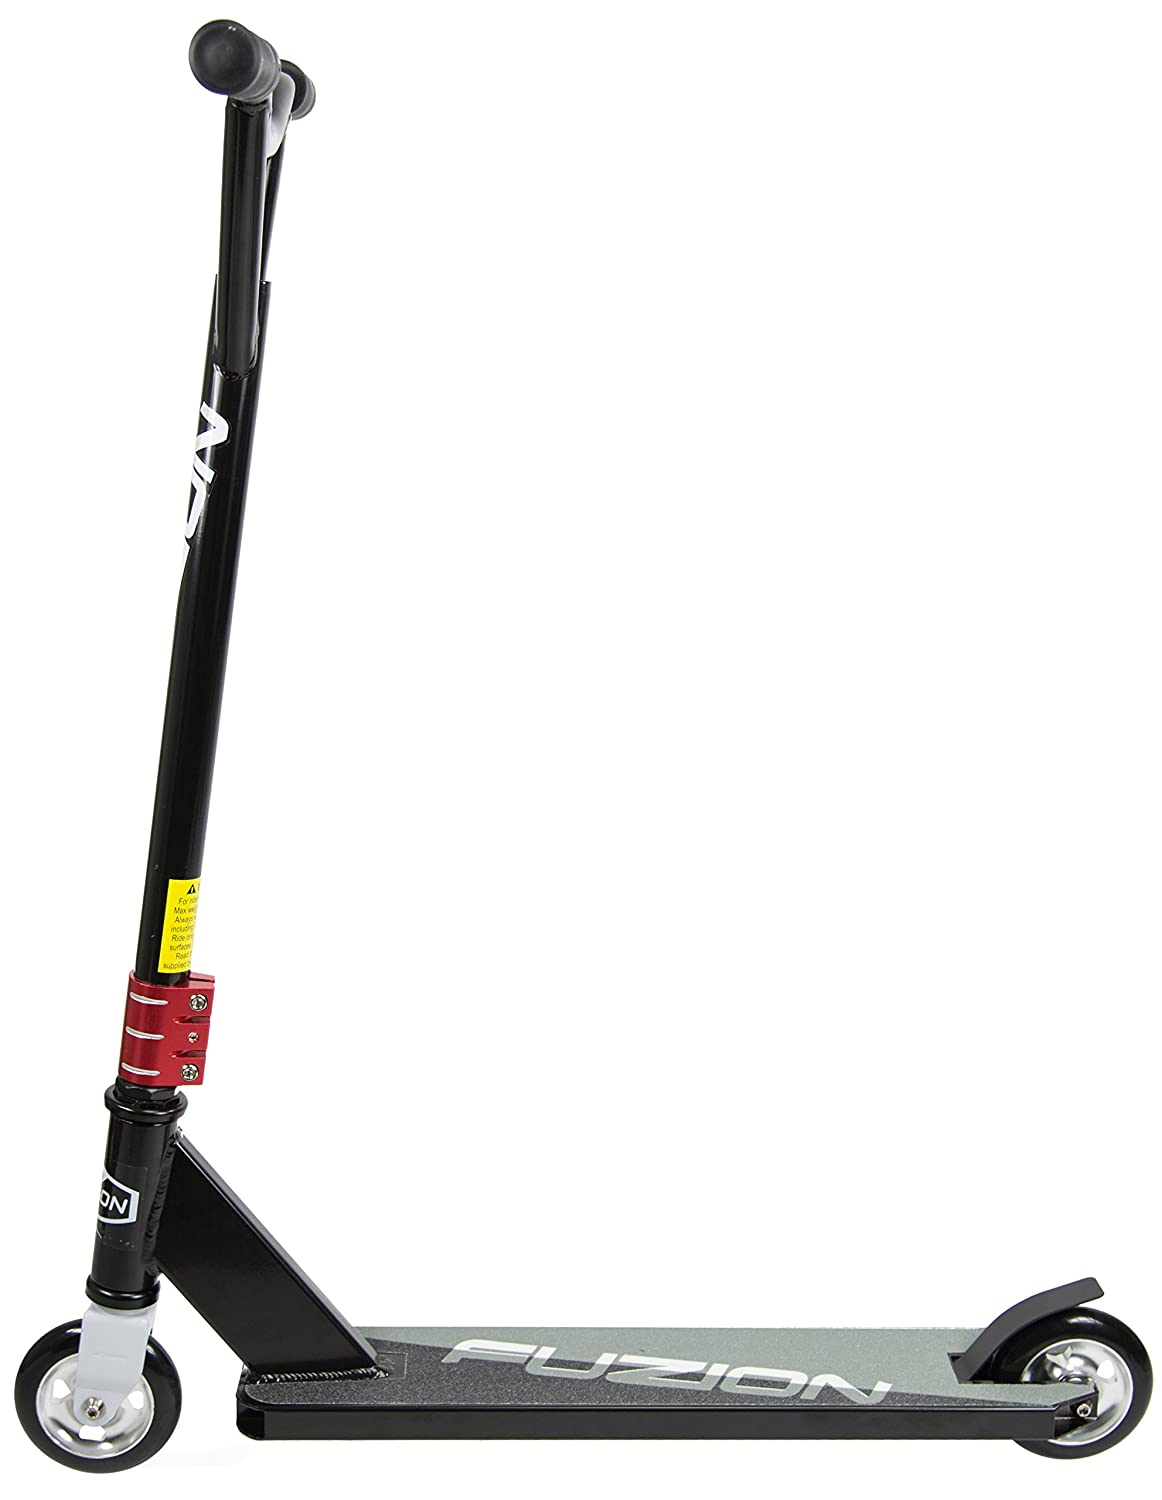 Beginner Stunt Scooters for Kids 8 Years and Up Fuzion X-5 Pro Scooters Quality Freestyle Kick Scooter for Boys and Girls Trick Scooter